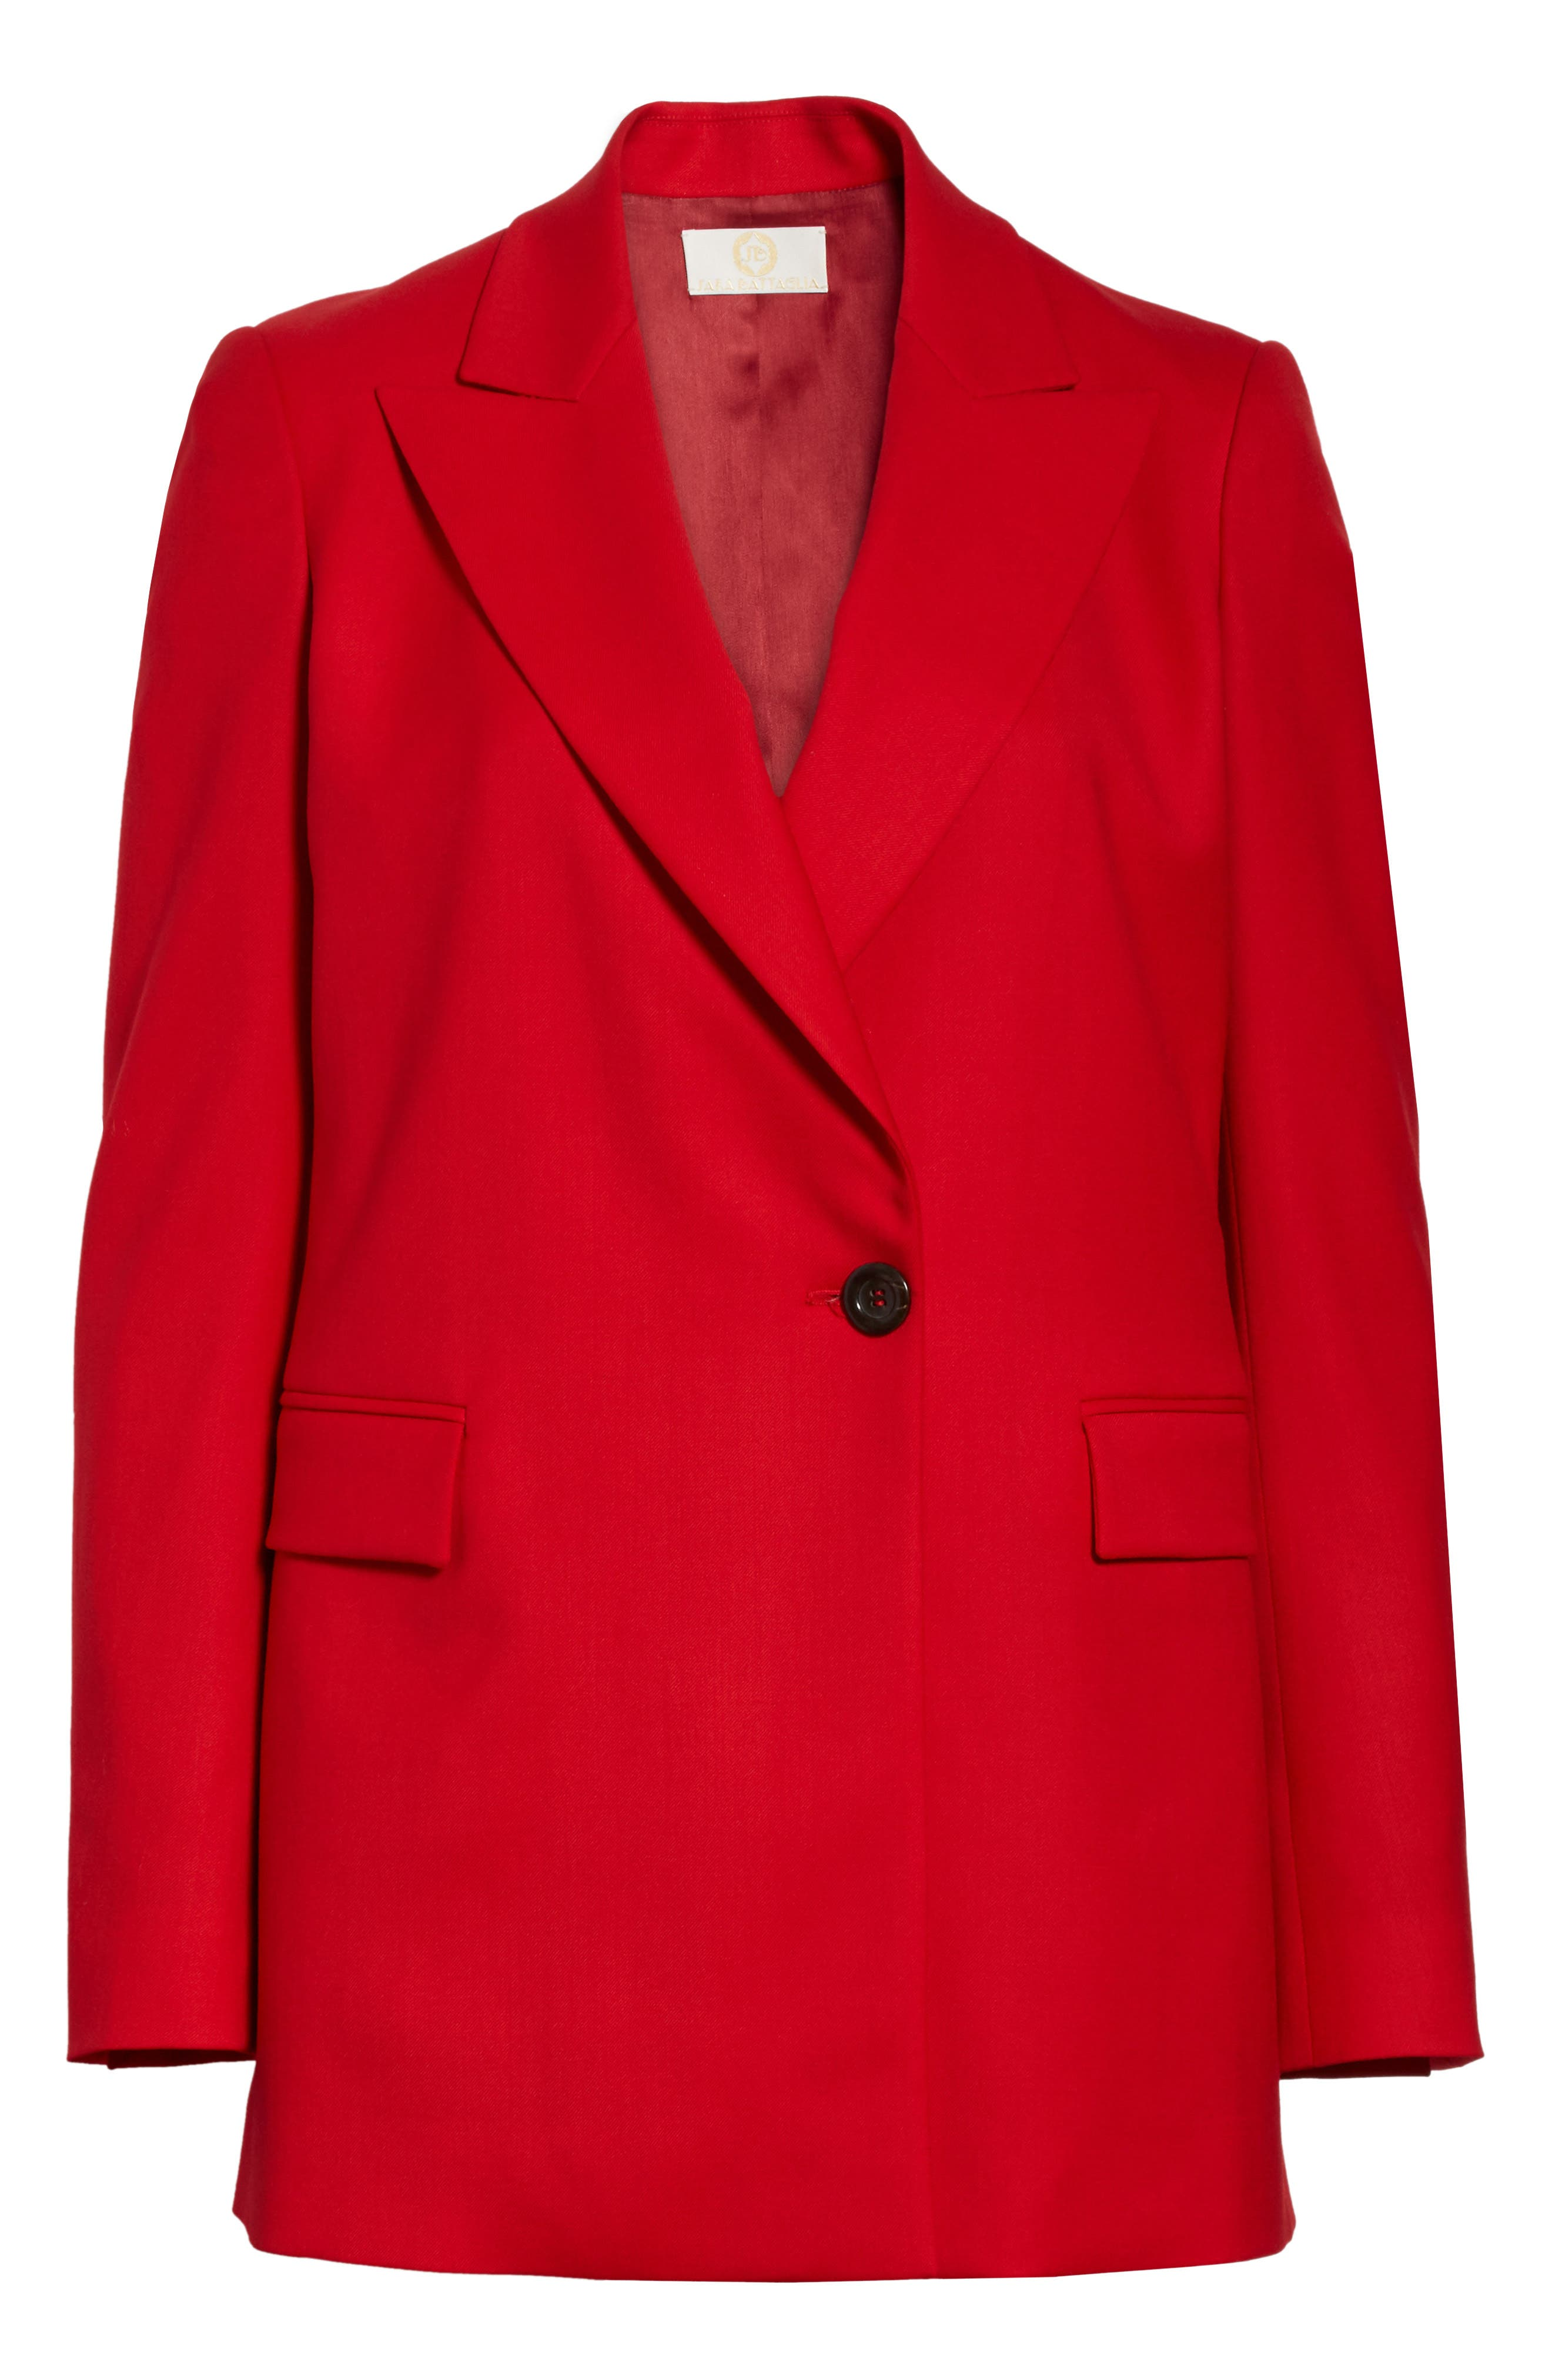 Stretch Wool Blazer,                             Alternate thumbnail 8, color,                             Red